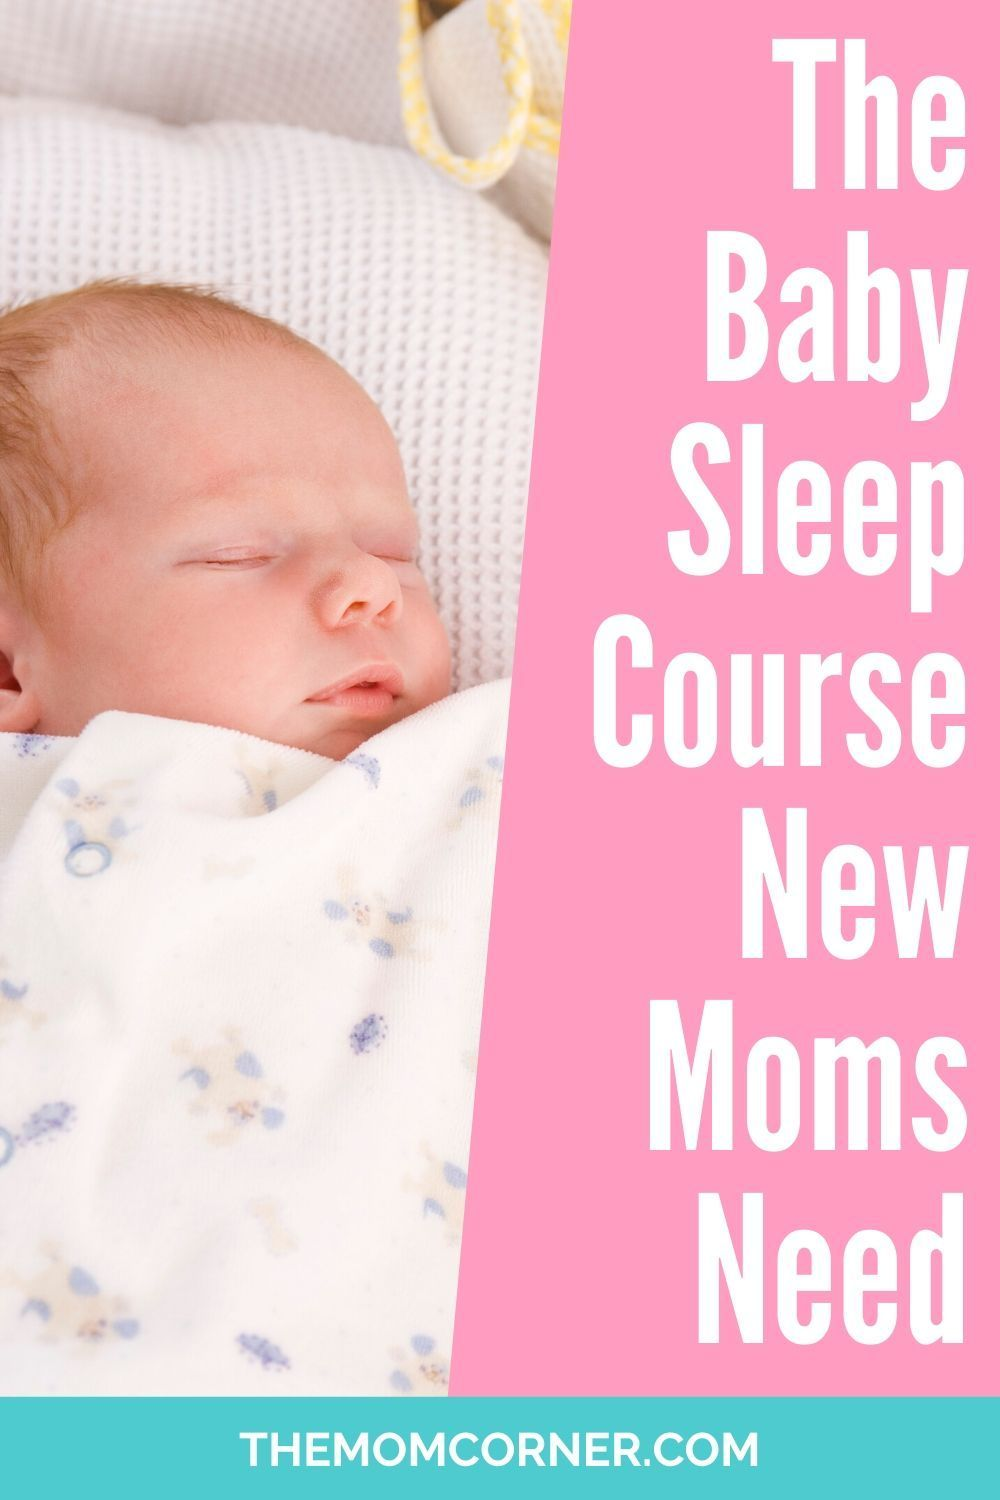 1ae221a1aaa2d1fa2931682c2b59d5d6 - How To Get Sleep With A Newborn And Toddler